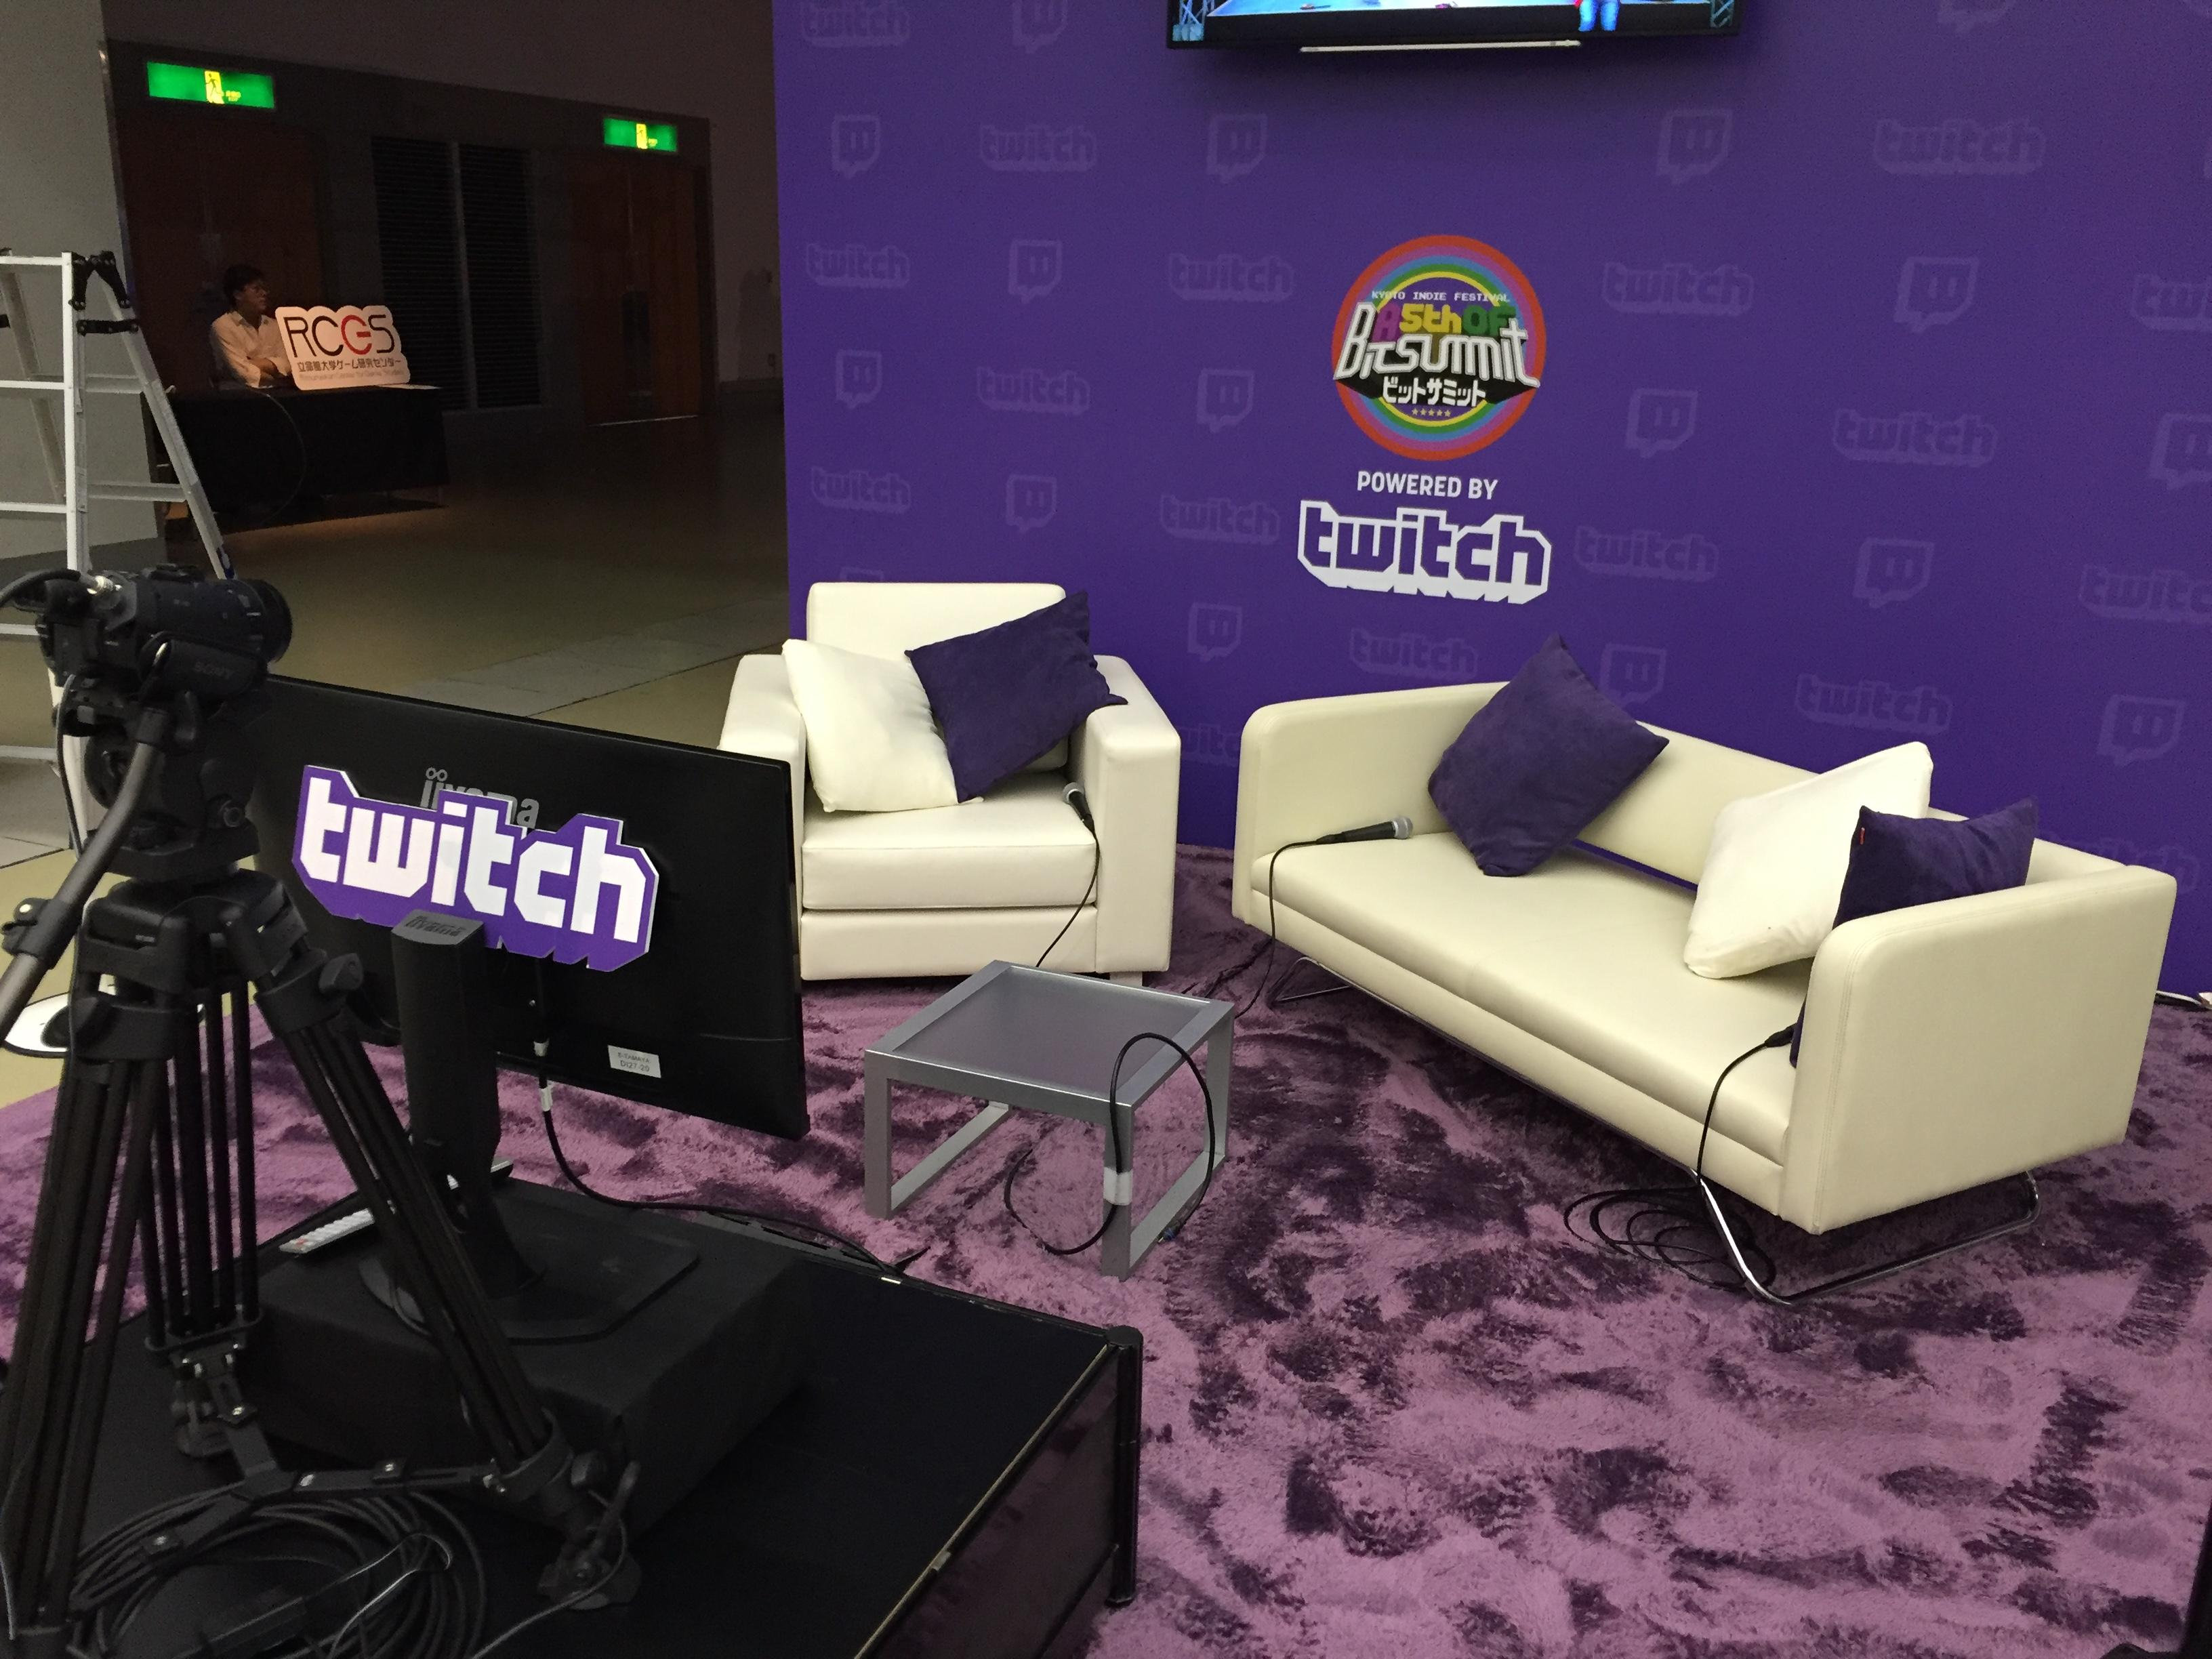 BitSummit 5th Twitch Booth